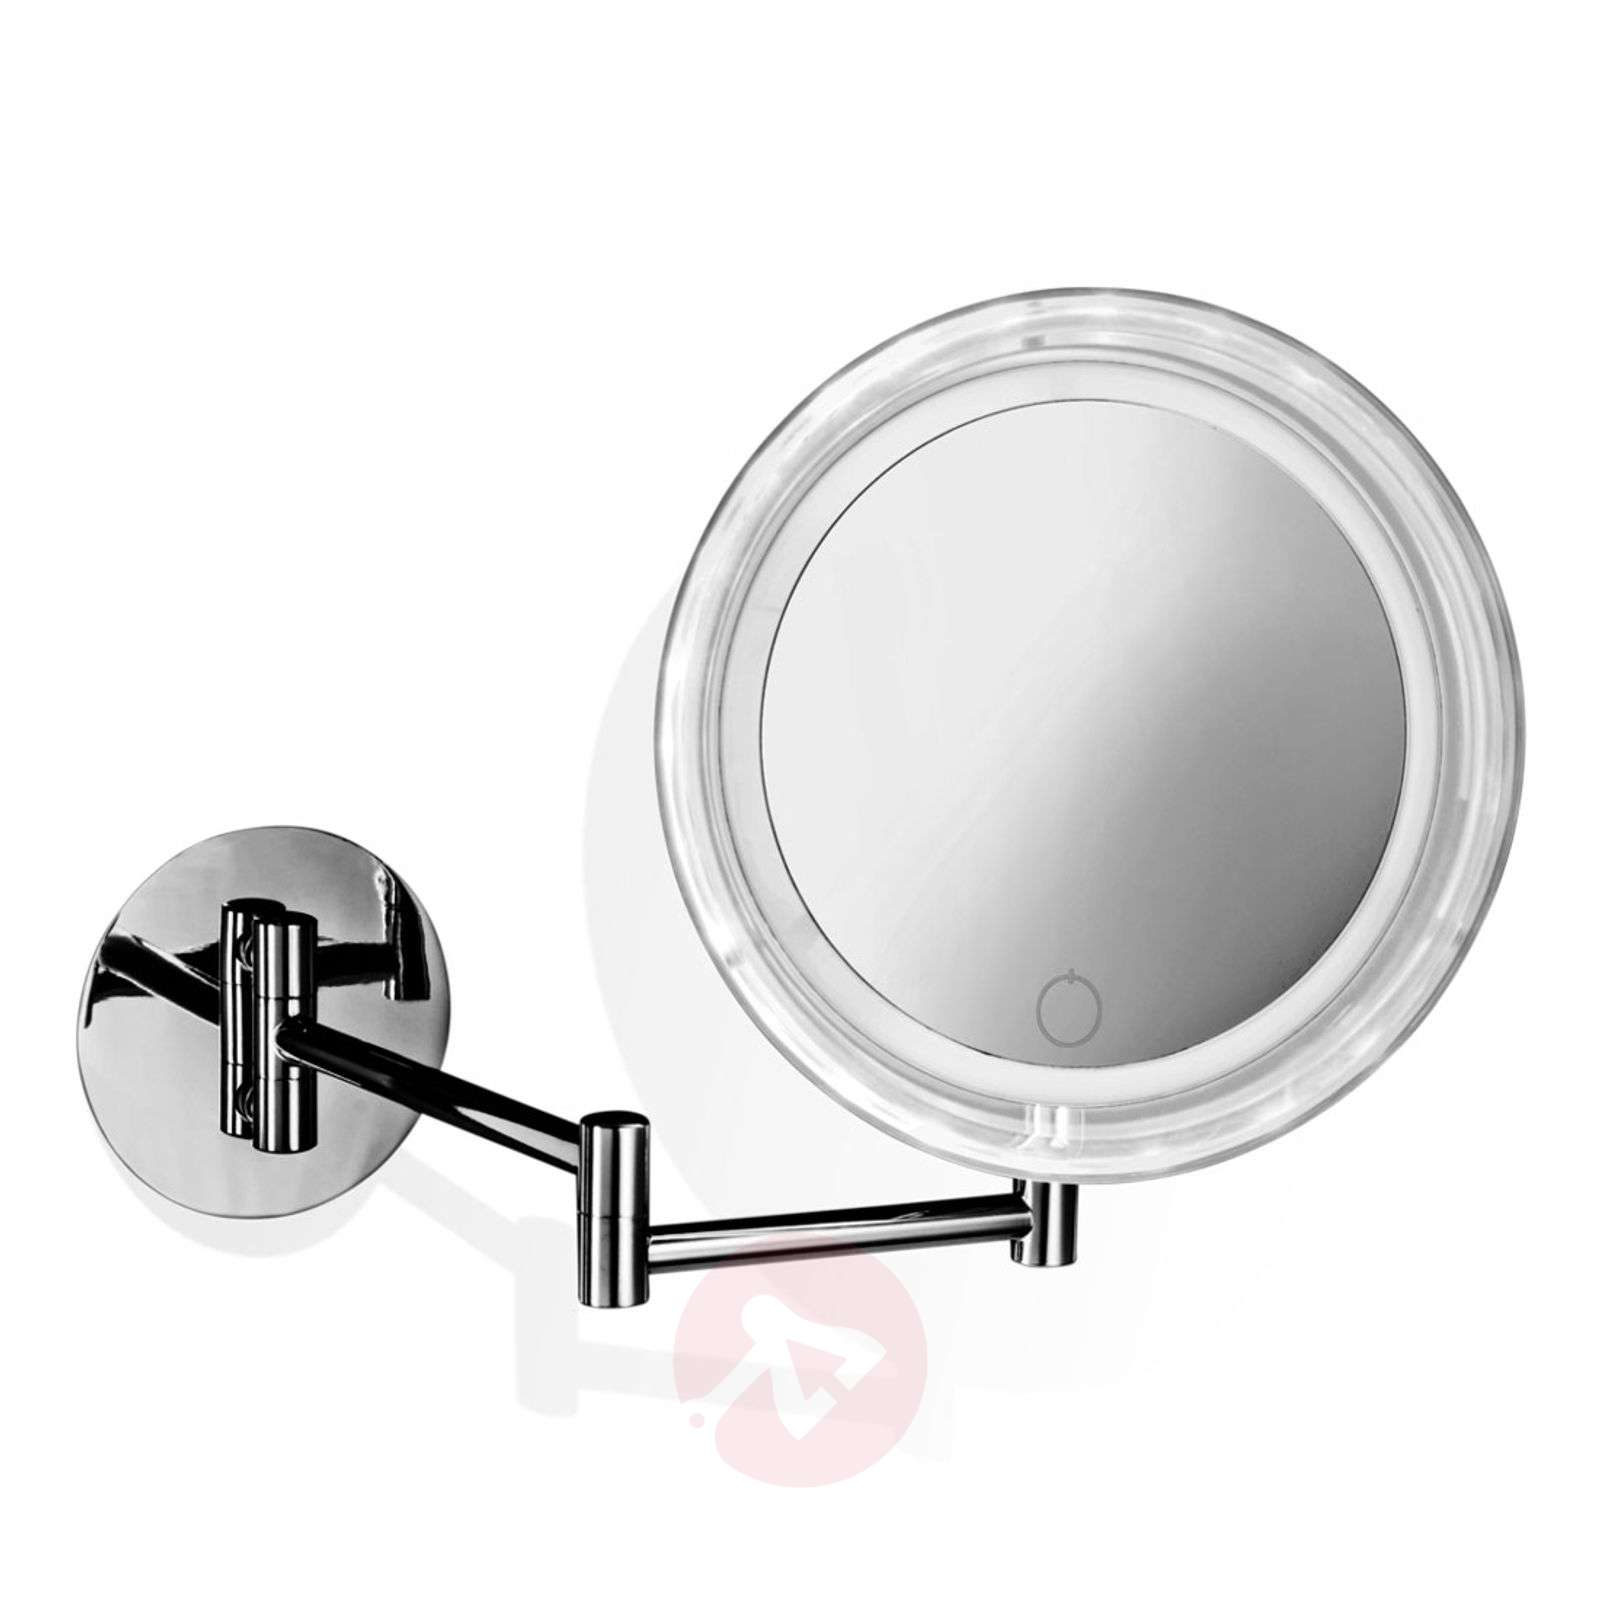 Decor Walther BS 17 Touch miroir mural LED rond-2504975-01